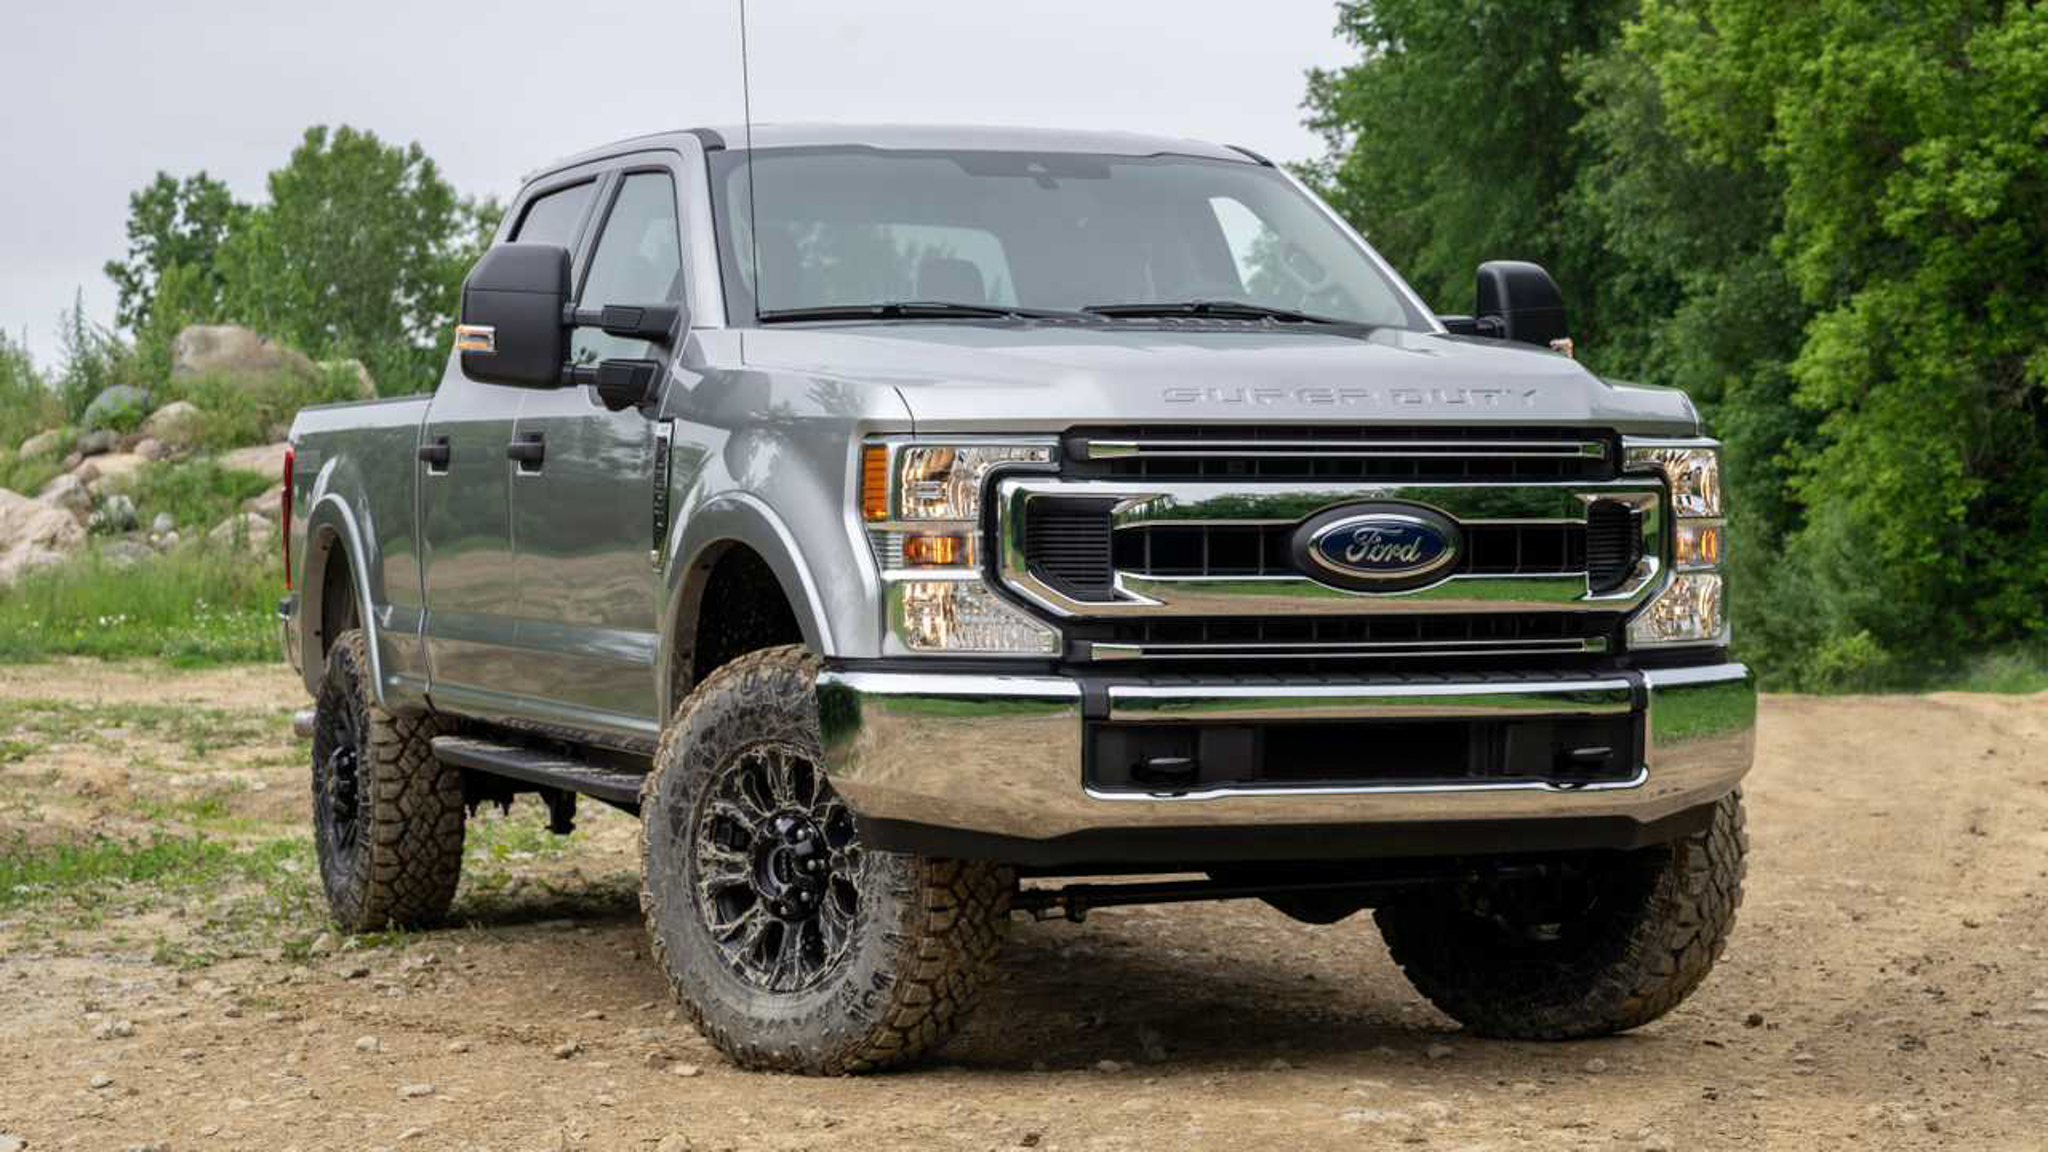 Chip Shortage Forces Ford to Drop 2022 Super Duty XLT Tremor Package